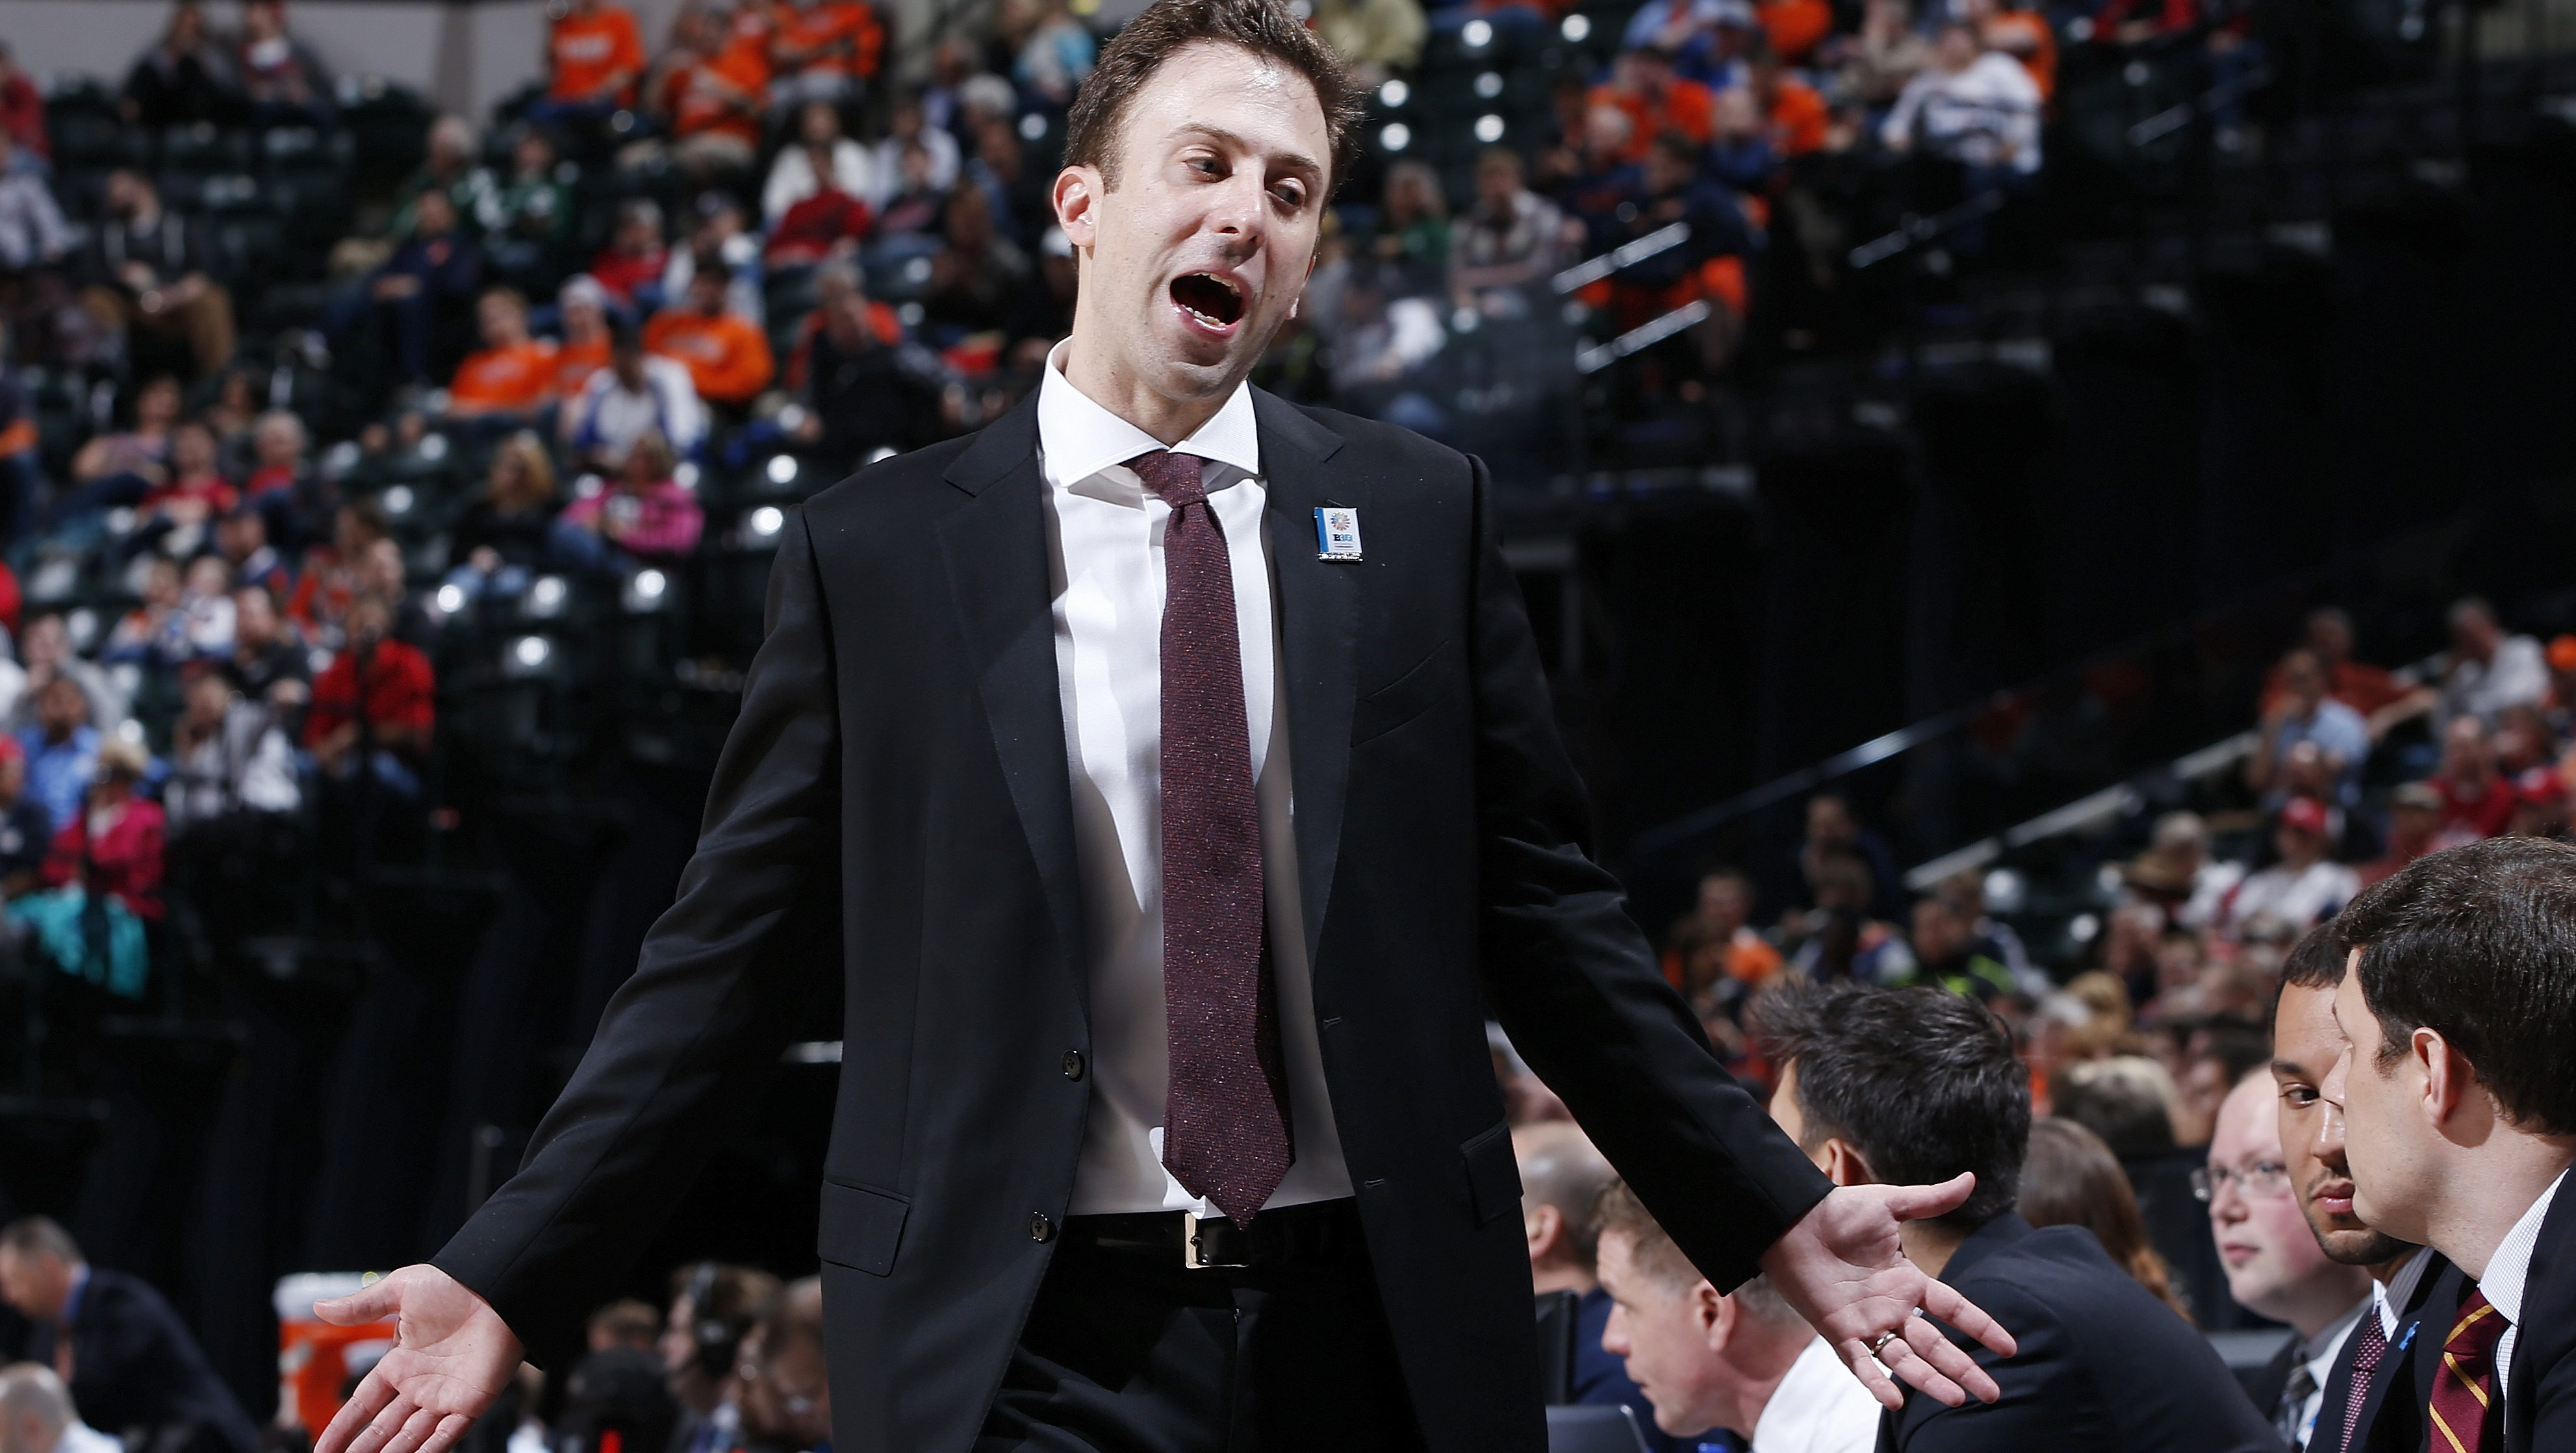 INDIANAPOLIS, IN - MARCH 9: Head coach Richard Pitino of the Minnesota Golden Gophers reacts against the Illinois Fighting Illini in the first round of the Big Ten Basketball Tournament at Bankers Life Fieldhouse on March 9, 2016 in Indianapolis, Indiana. Illinois defeated Minnesota 85-52. (Photo by Joe Robbins/Getty Images)